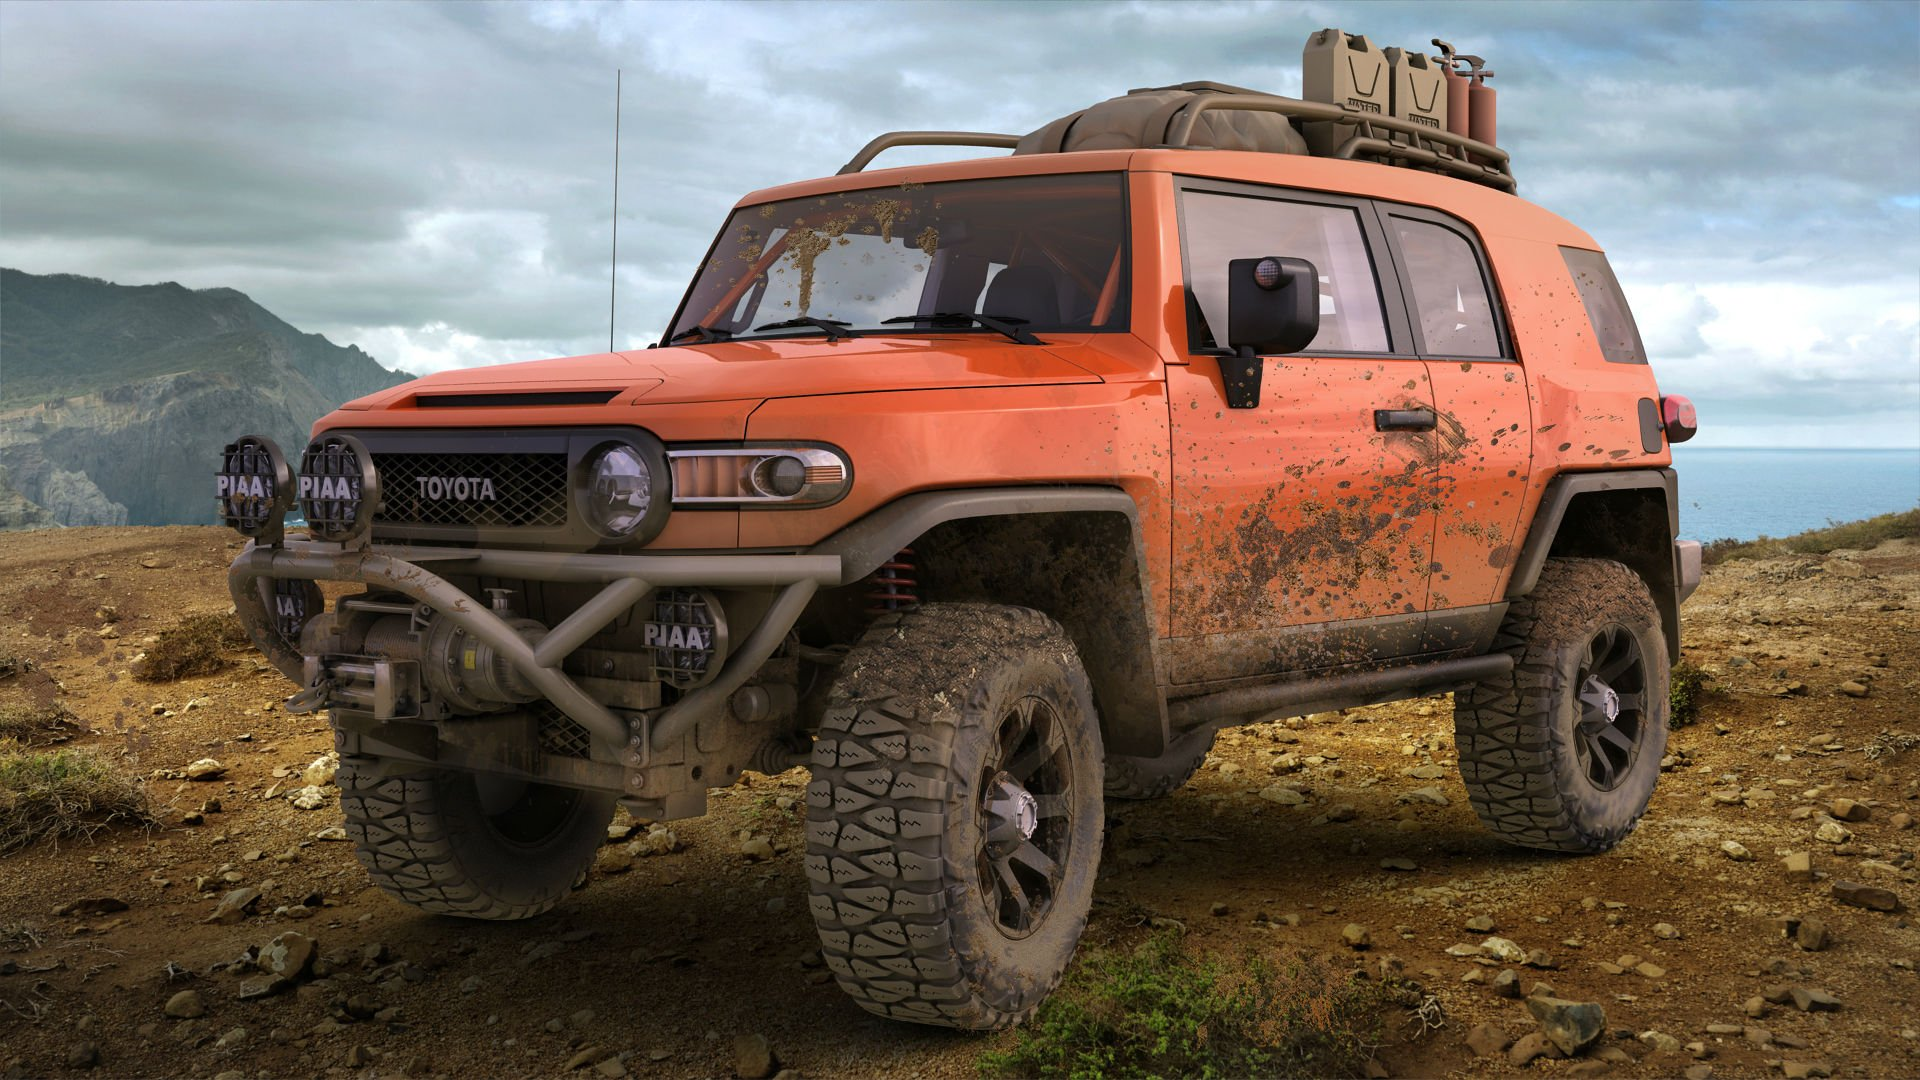 File Name 863131 Cars Backgrounds In High Quality Off Road by Jake 1920x1080